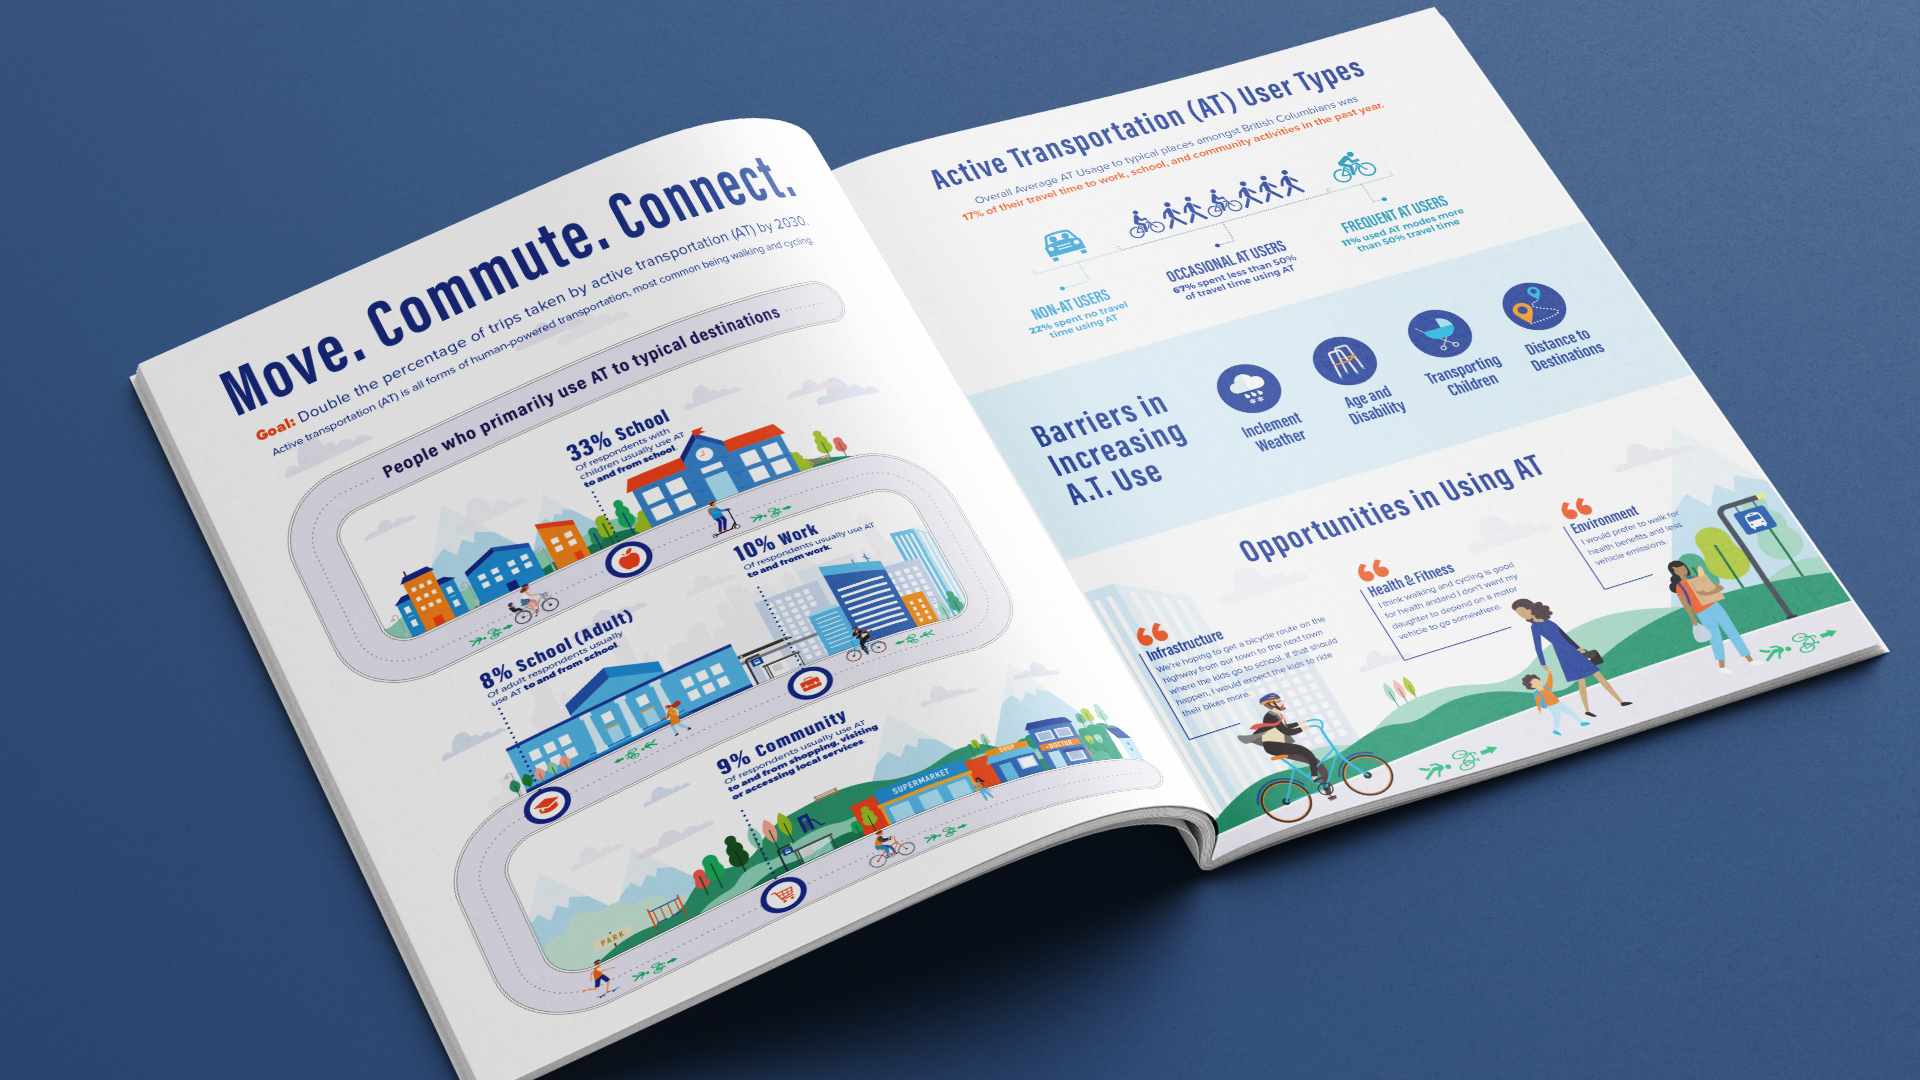 Ministry of Transportation Active Transportation Strategy infographic spread